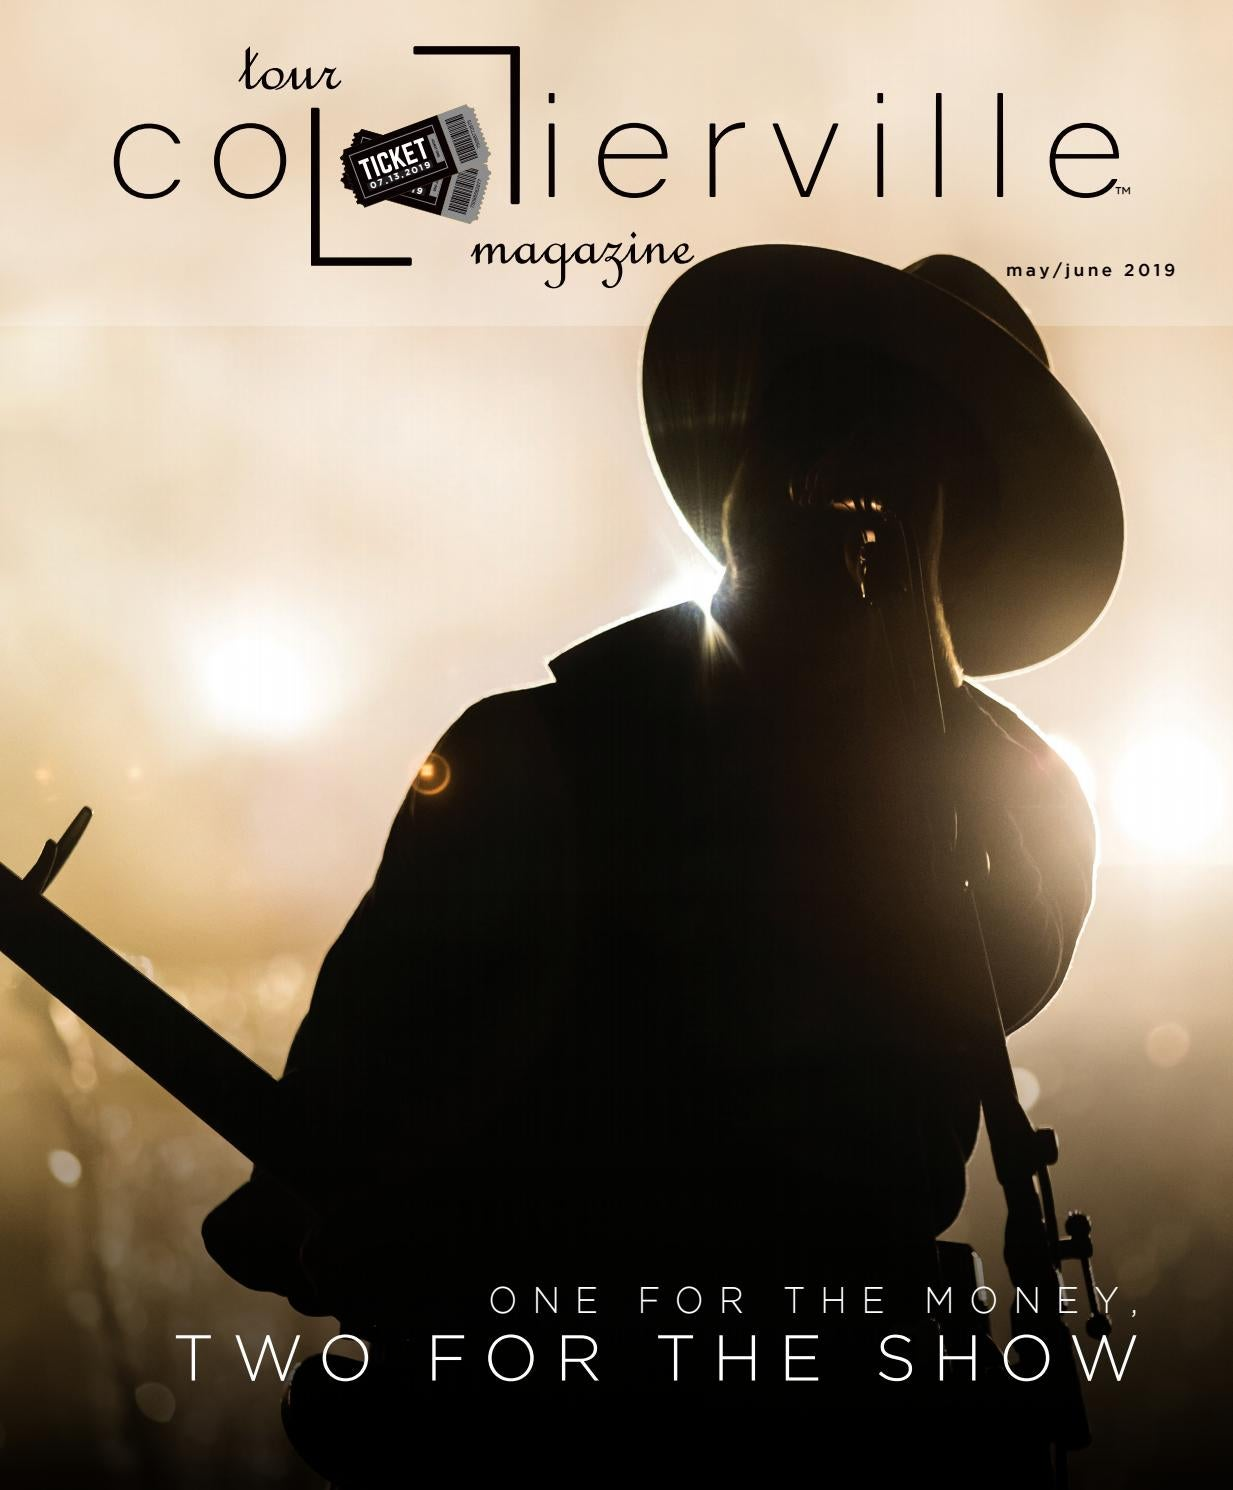 Tour Collierville Magazine - May/June 2019 by Tour